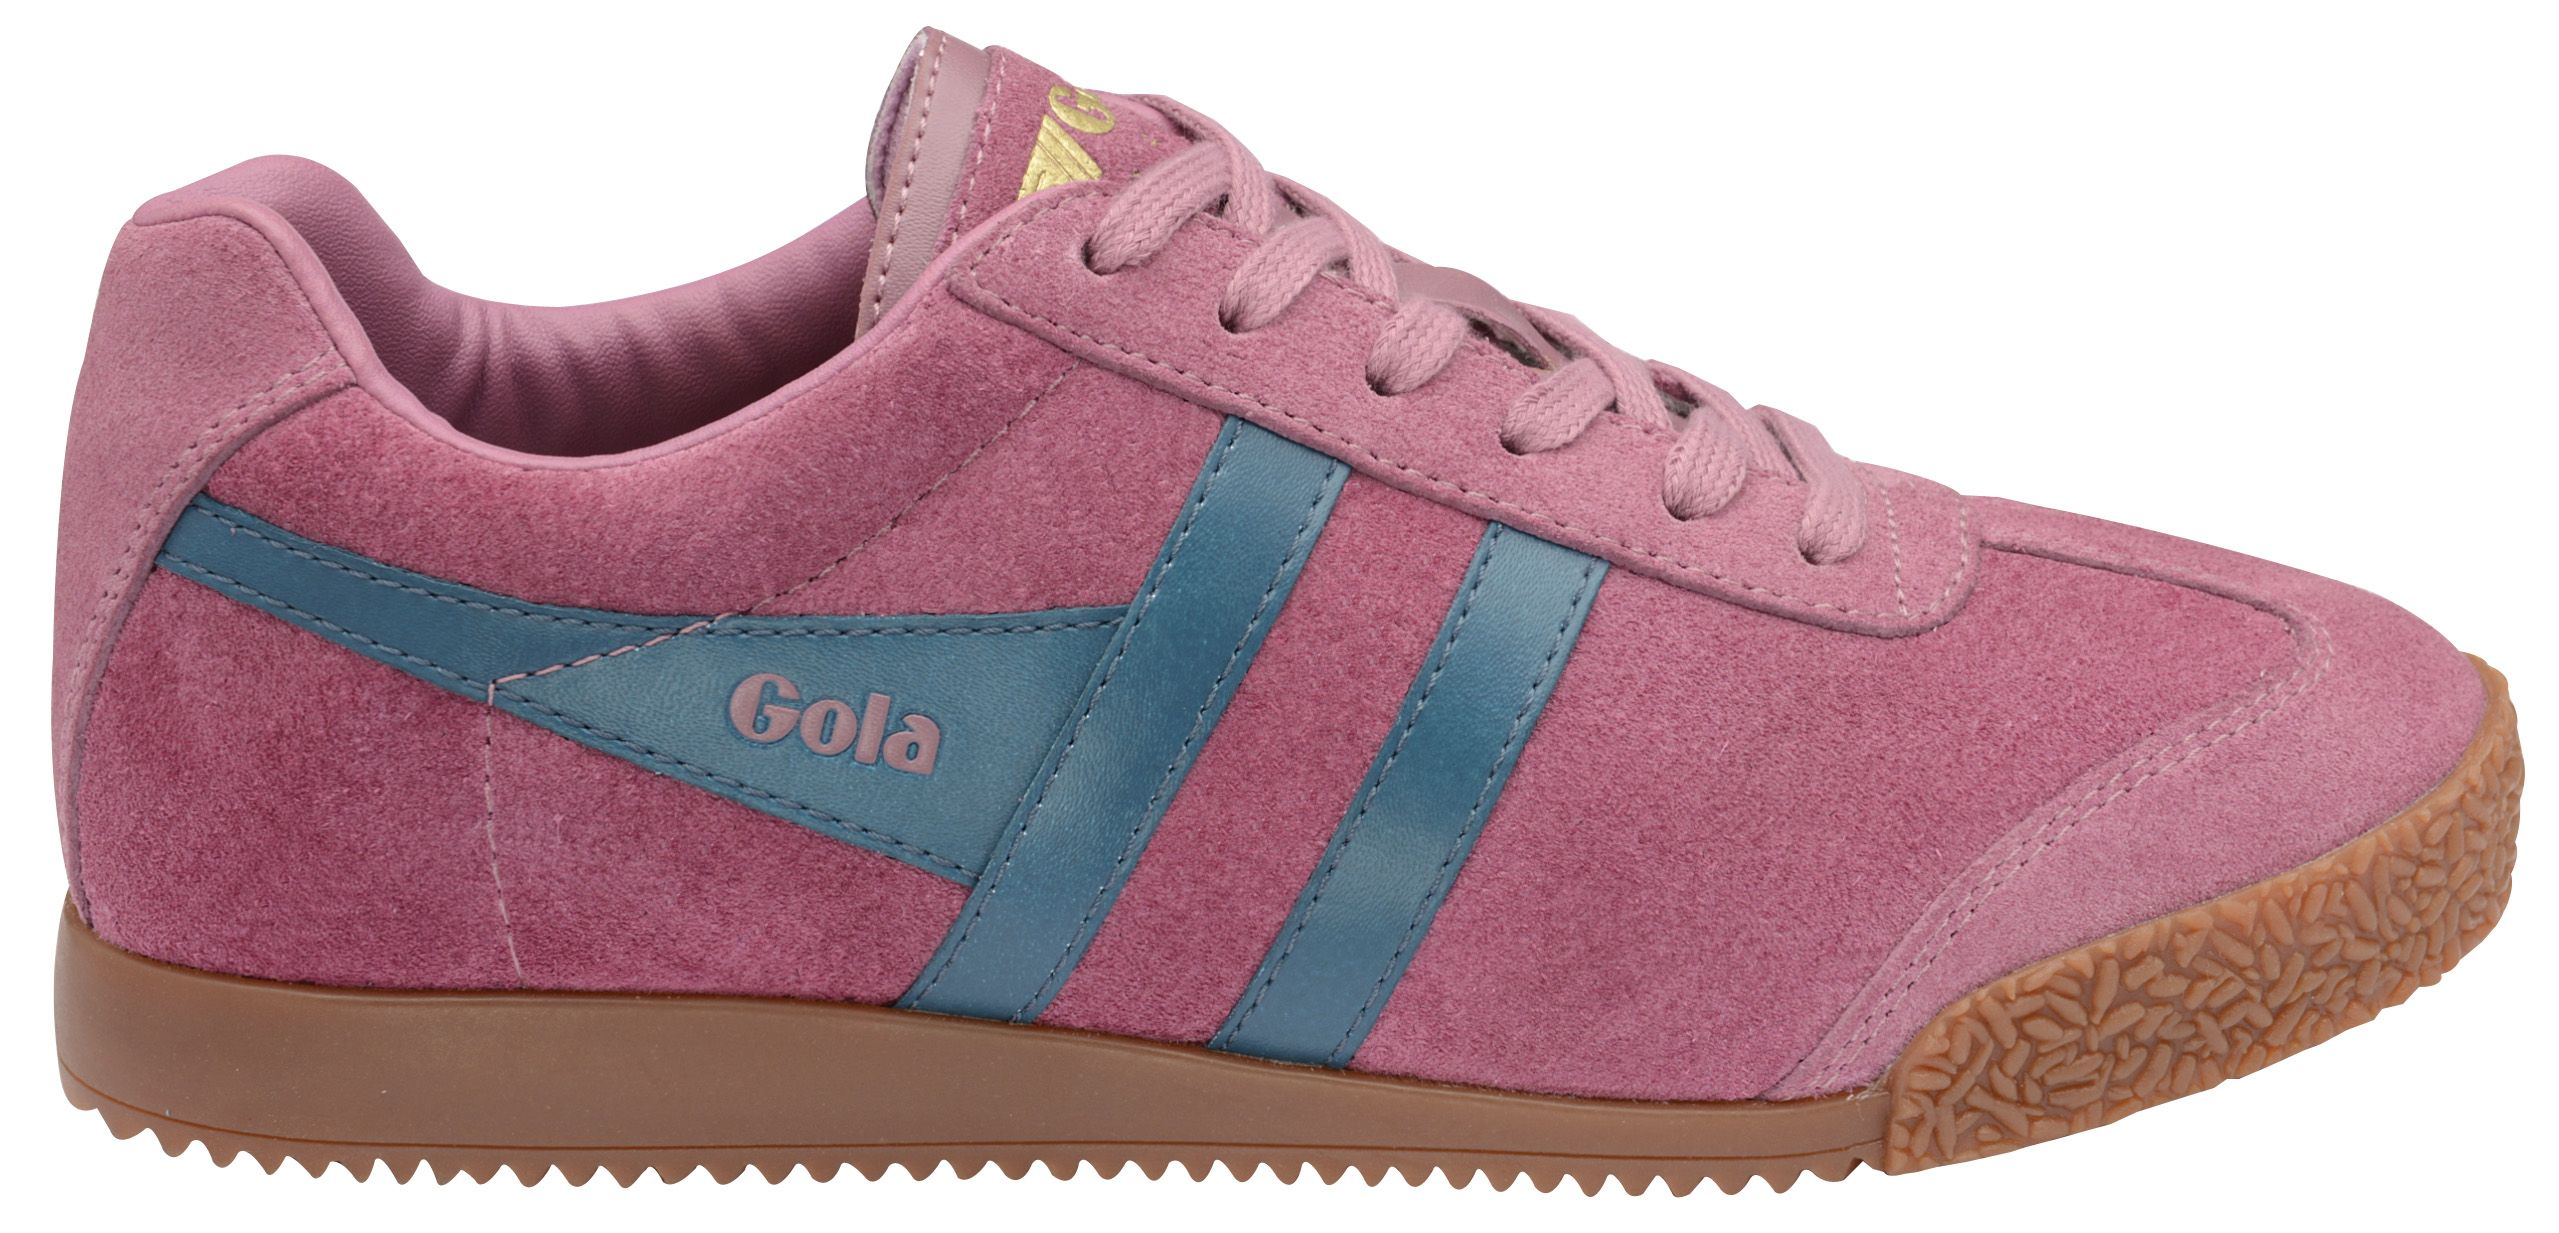 Gola Gola Harrier suede dusky pink/teal trainers, Pink